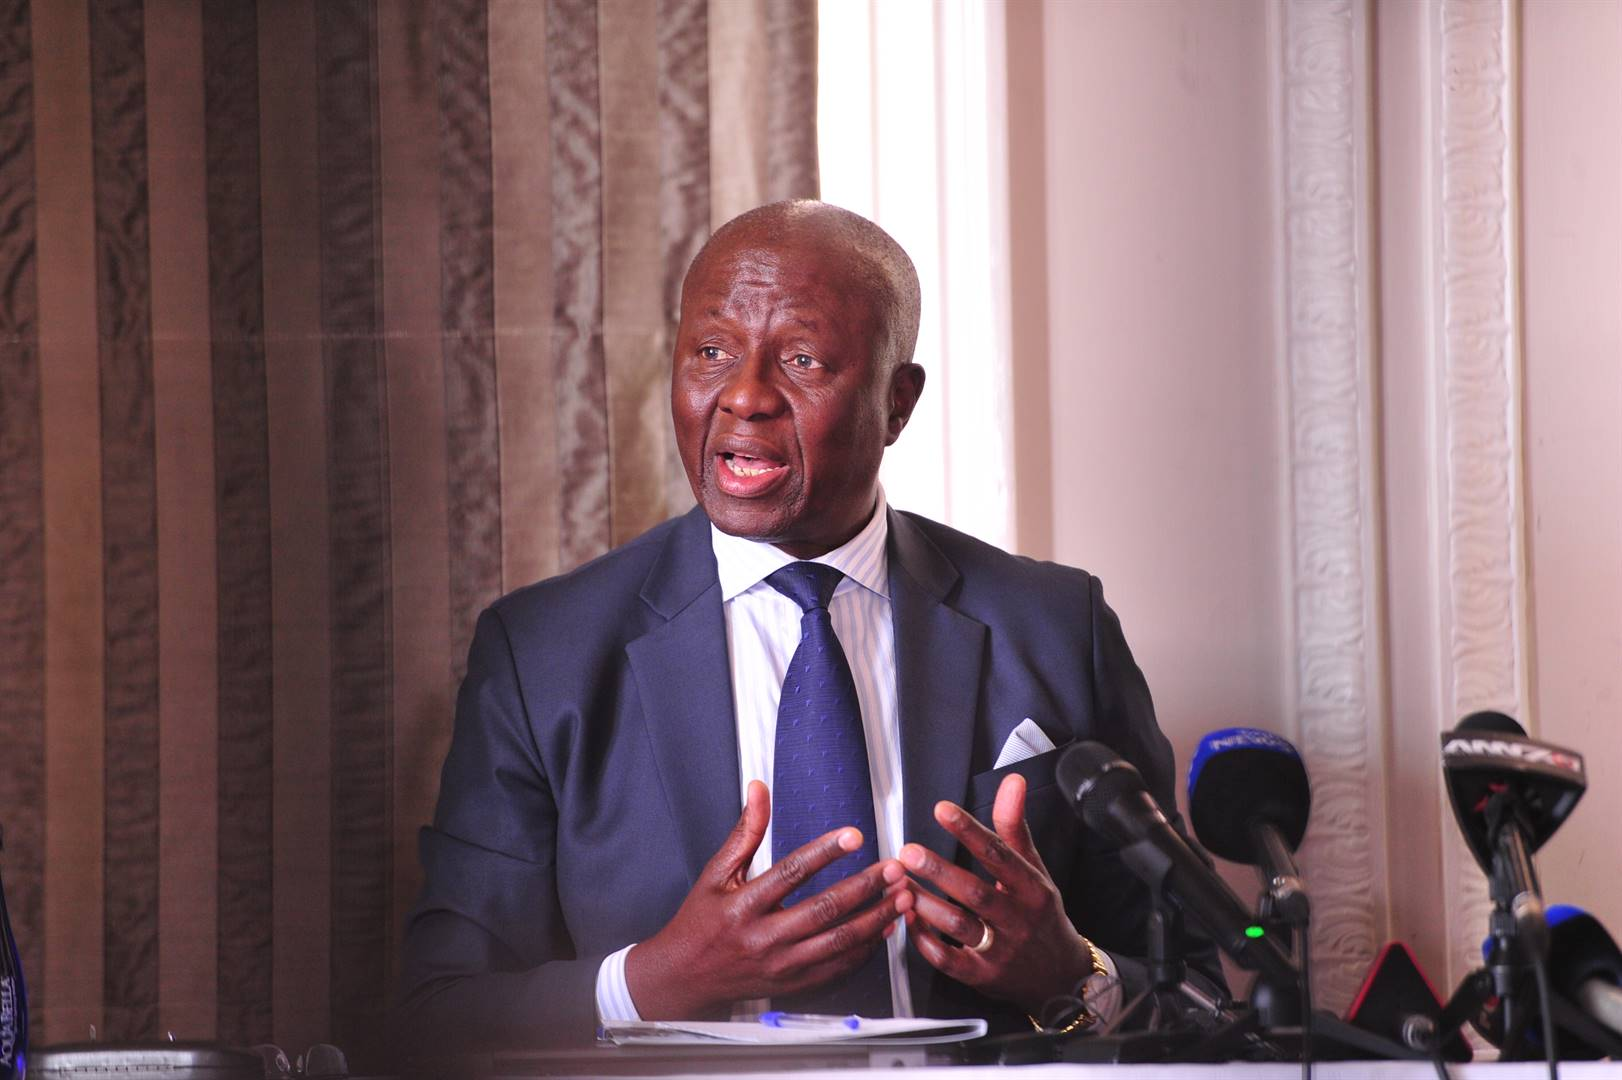 Moseneke is set to appoint members to a panel that will form part of a review committee. Photo: Gallo Images / Daily Sun / Christopher Moagi